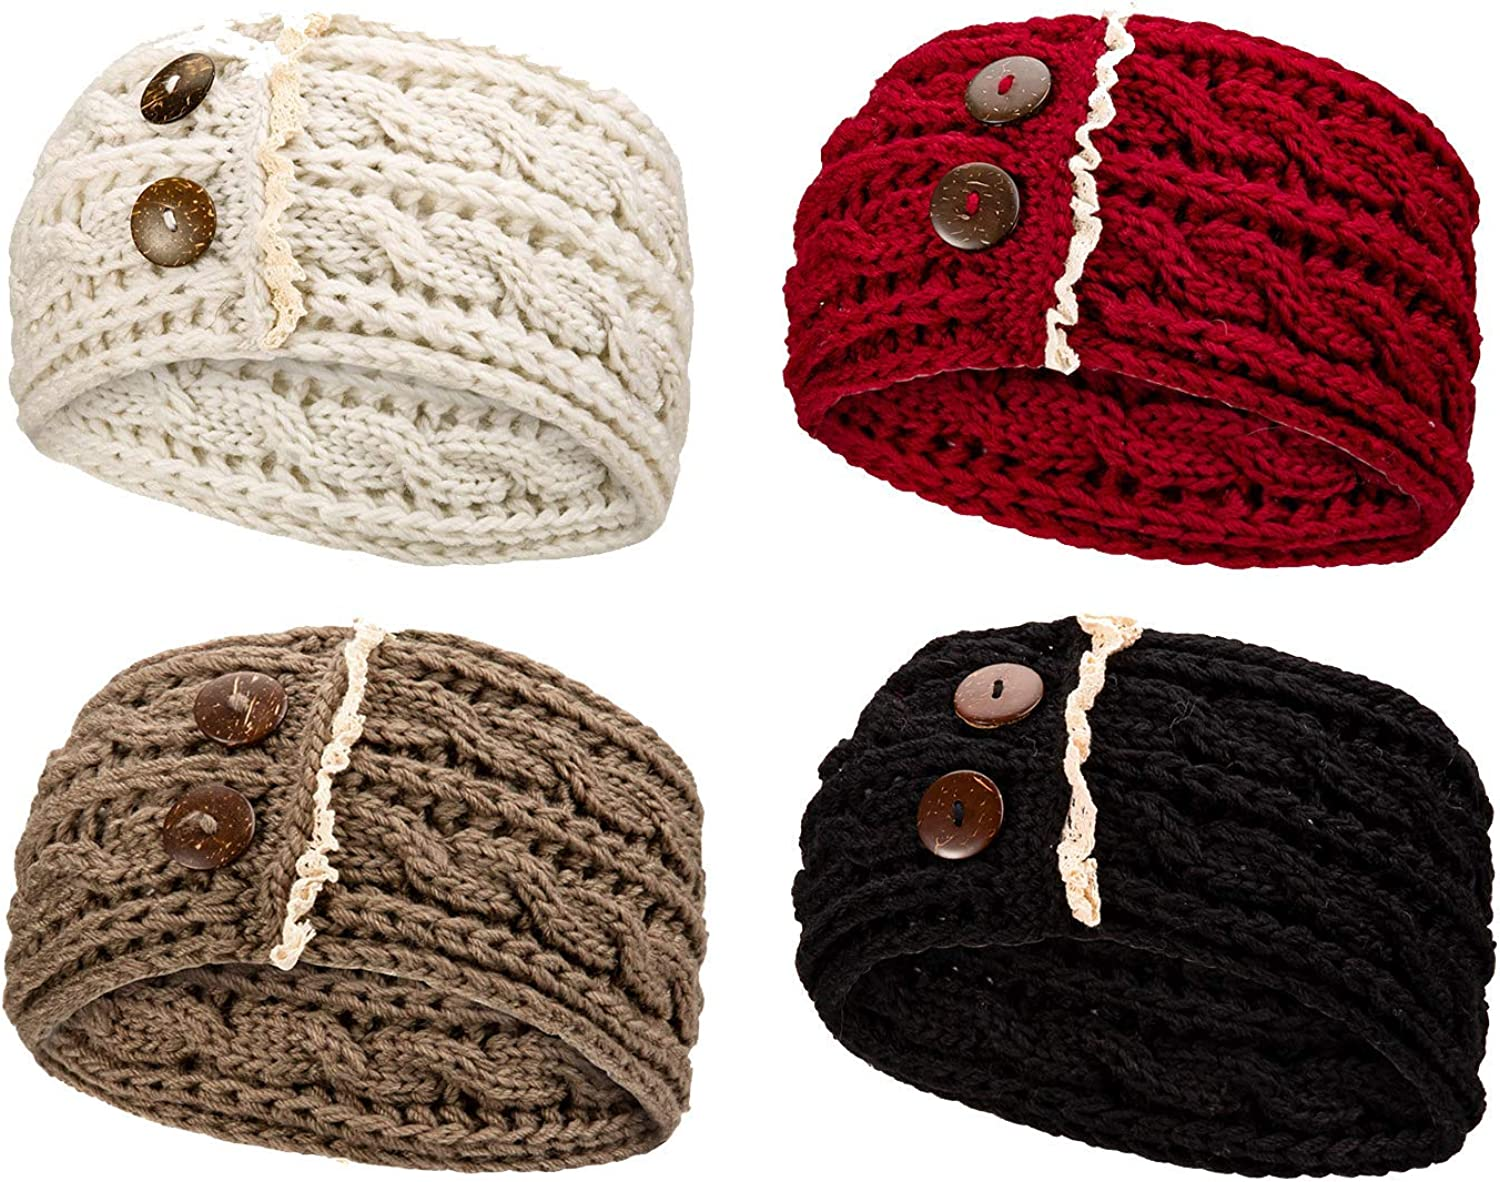 Whaline Women Winter Headbands Cable Knit Ear Warmer Headband 4 Pack Crochet Turban with Lace Button Thick Stretchy Head Wrap Winter Hair Band Accessories for Girls Women Sking Camping Hiking Outdoor